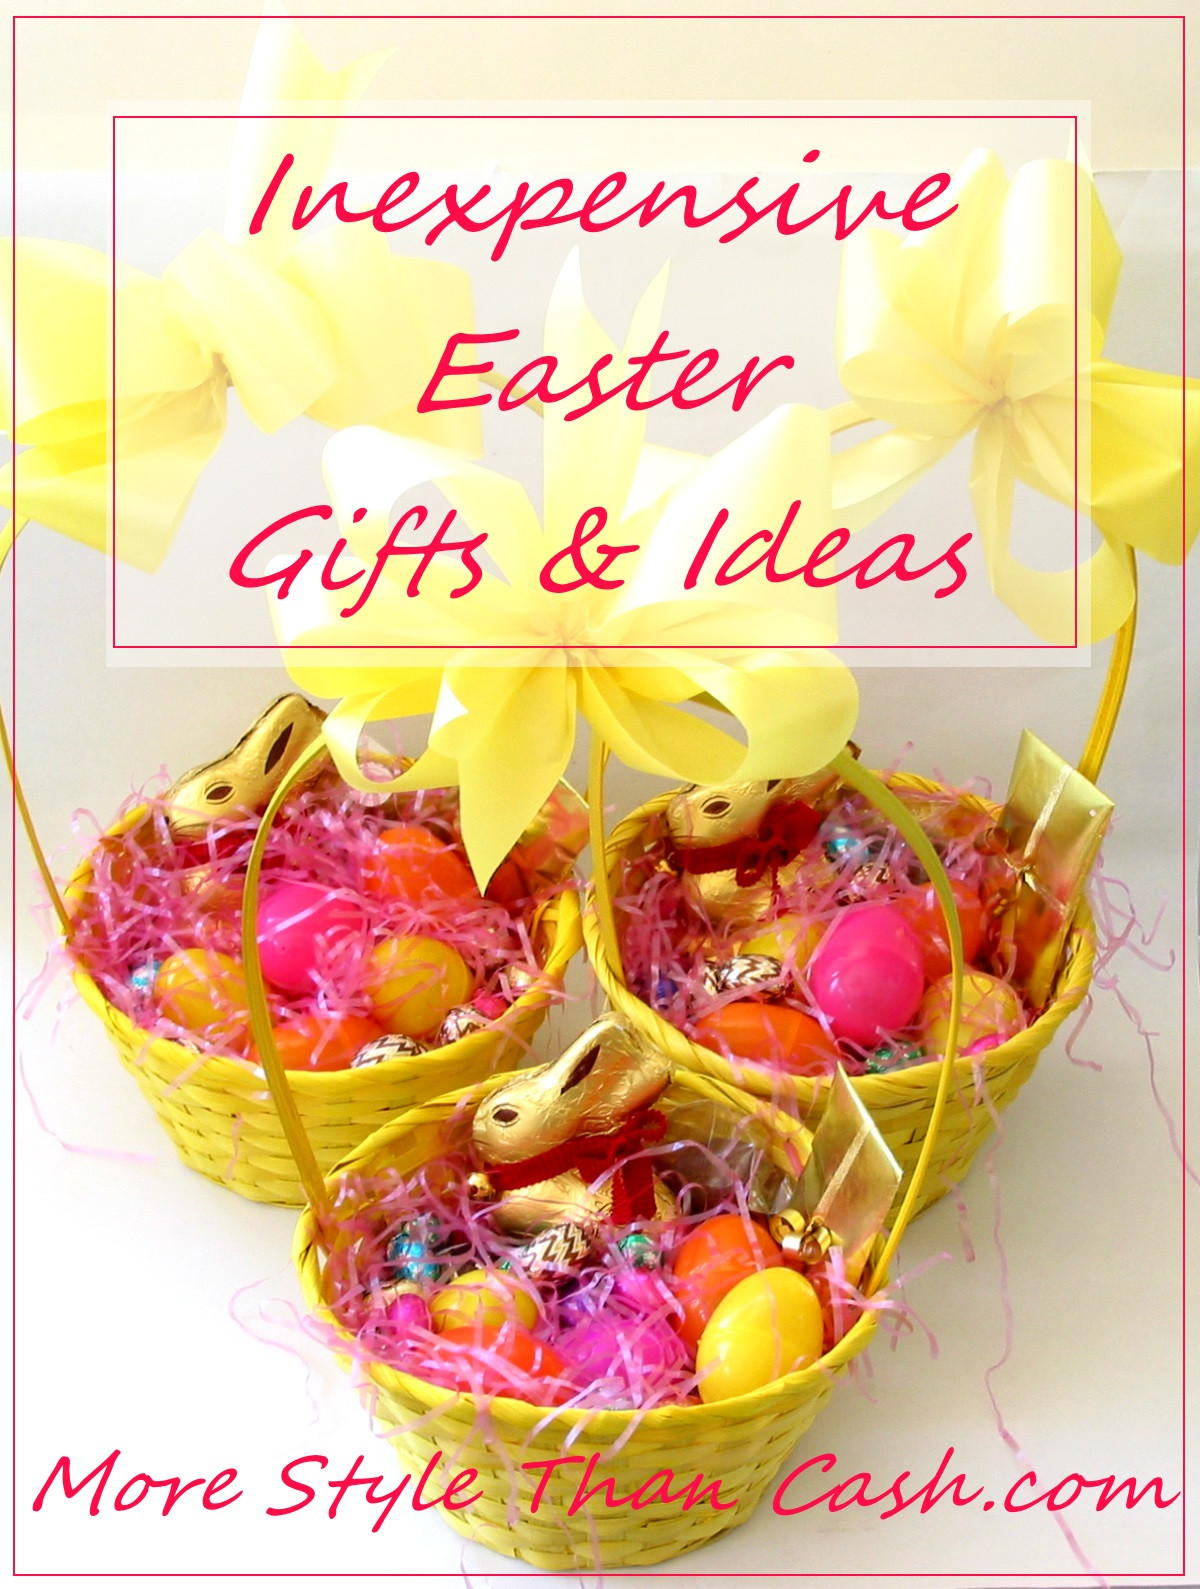 Cheap Easter Dinner Ideas  Inexpensive Easter Gifts and Ideas